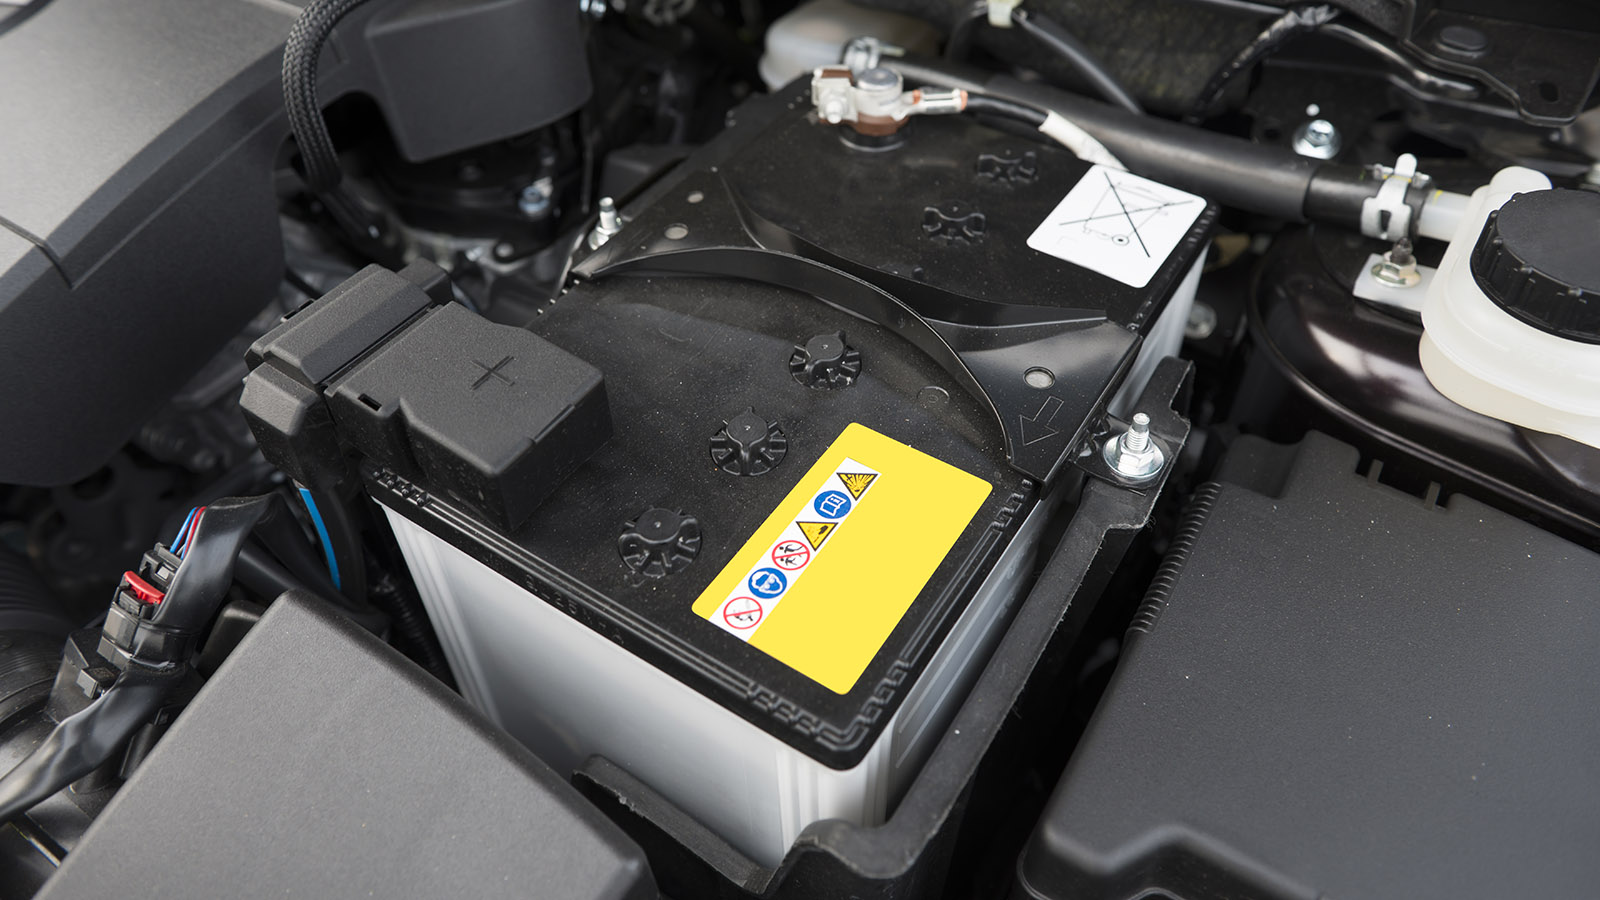 How Often Should I Replace My Car Battery? - HowStuffWorks